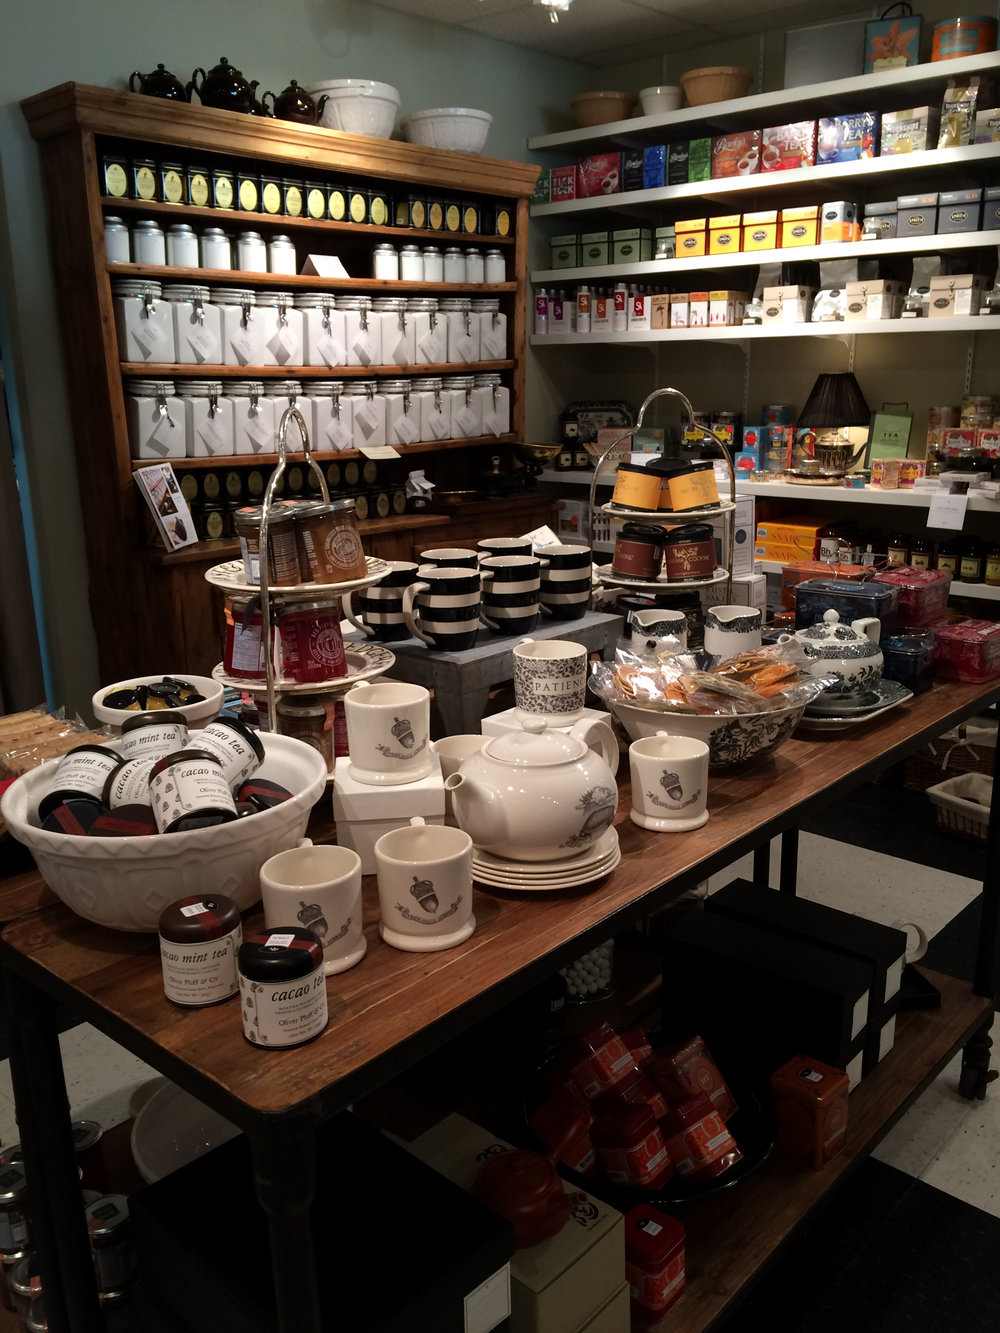 The tea corner is my favorite.I can never leave without a jar of honey or some new tea for the perfect cuppa.